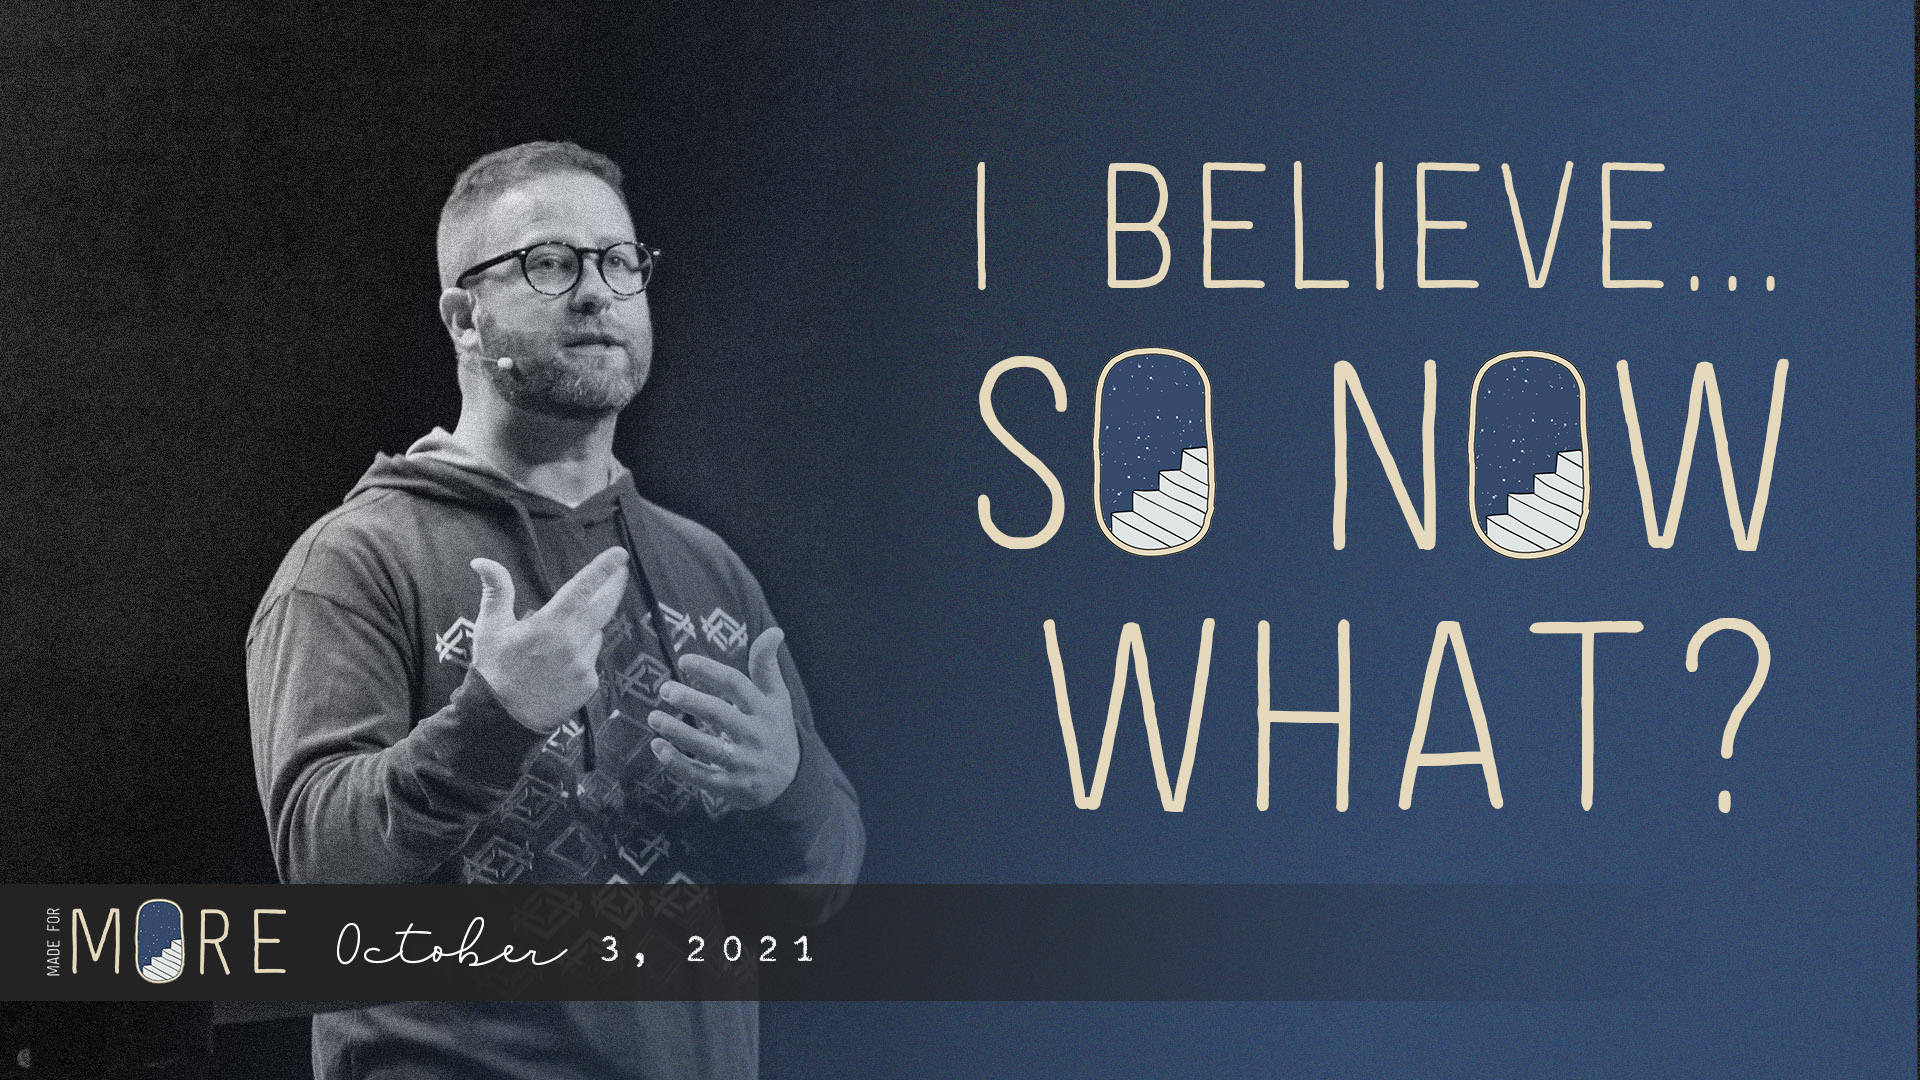 I Believe...So Now What? Image